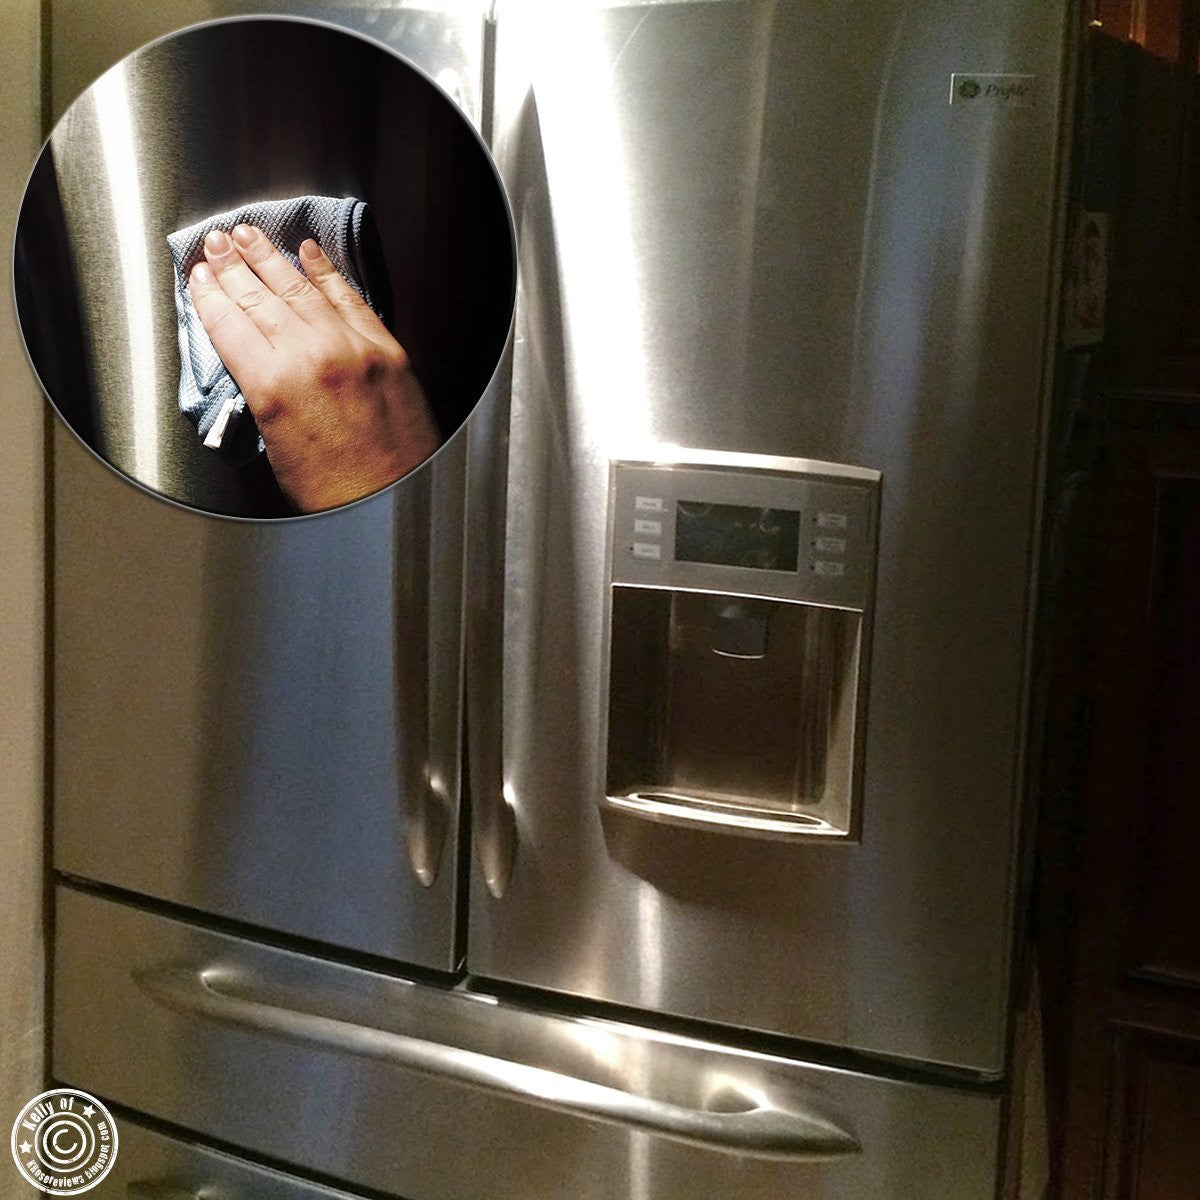 Pro Chef Kitchen Tools Stainless Steel Appliance Polishing Cloth Clean And Polish Appliances Counters Fridge Doors Sinks Windows With Easy Wipes Using